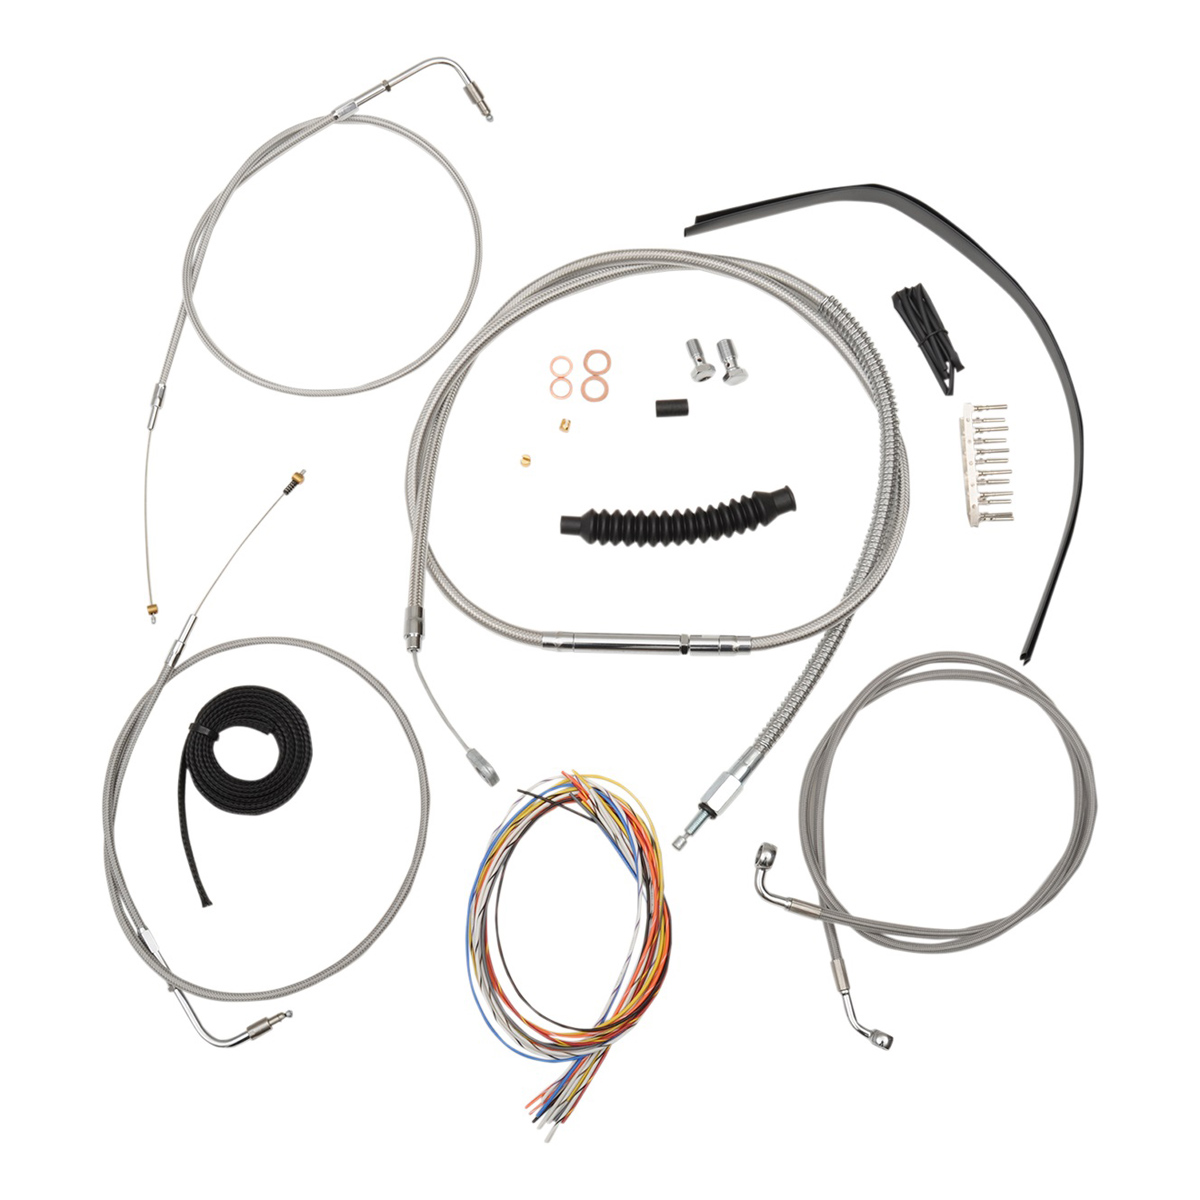 LA Choppers Stainless Complete Cable/Line/Wiring Handlebar Kit for 15″-17″ Bars on Models without ABS